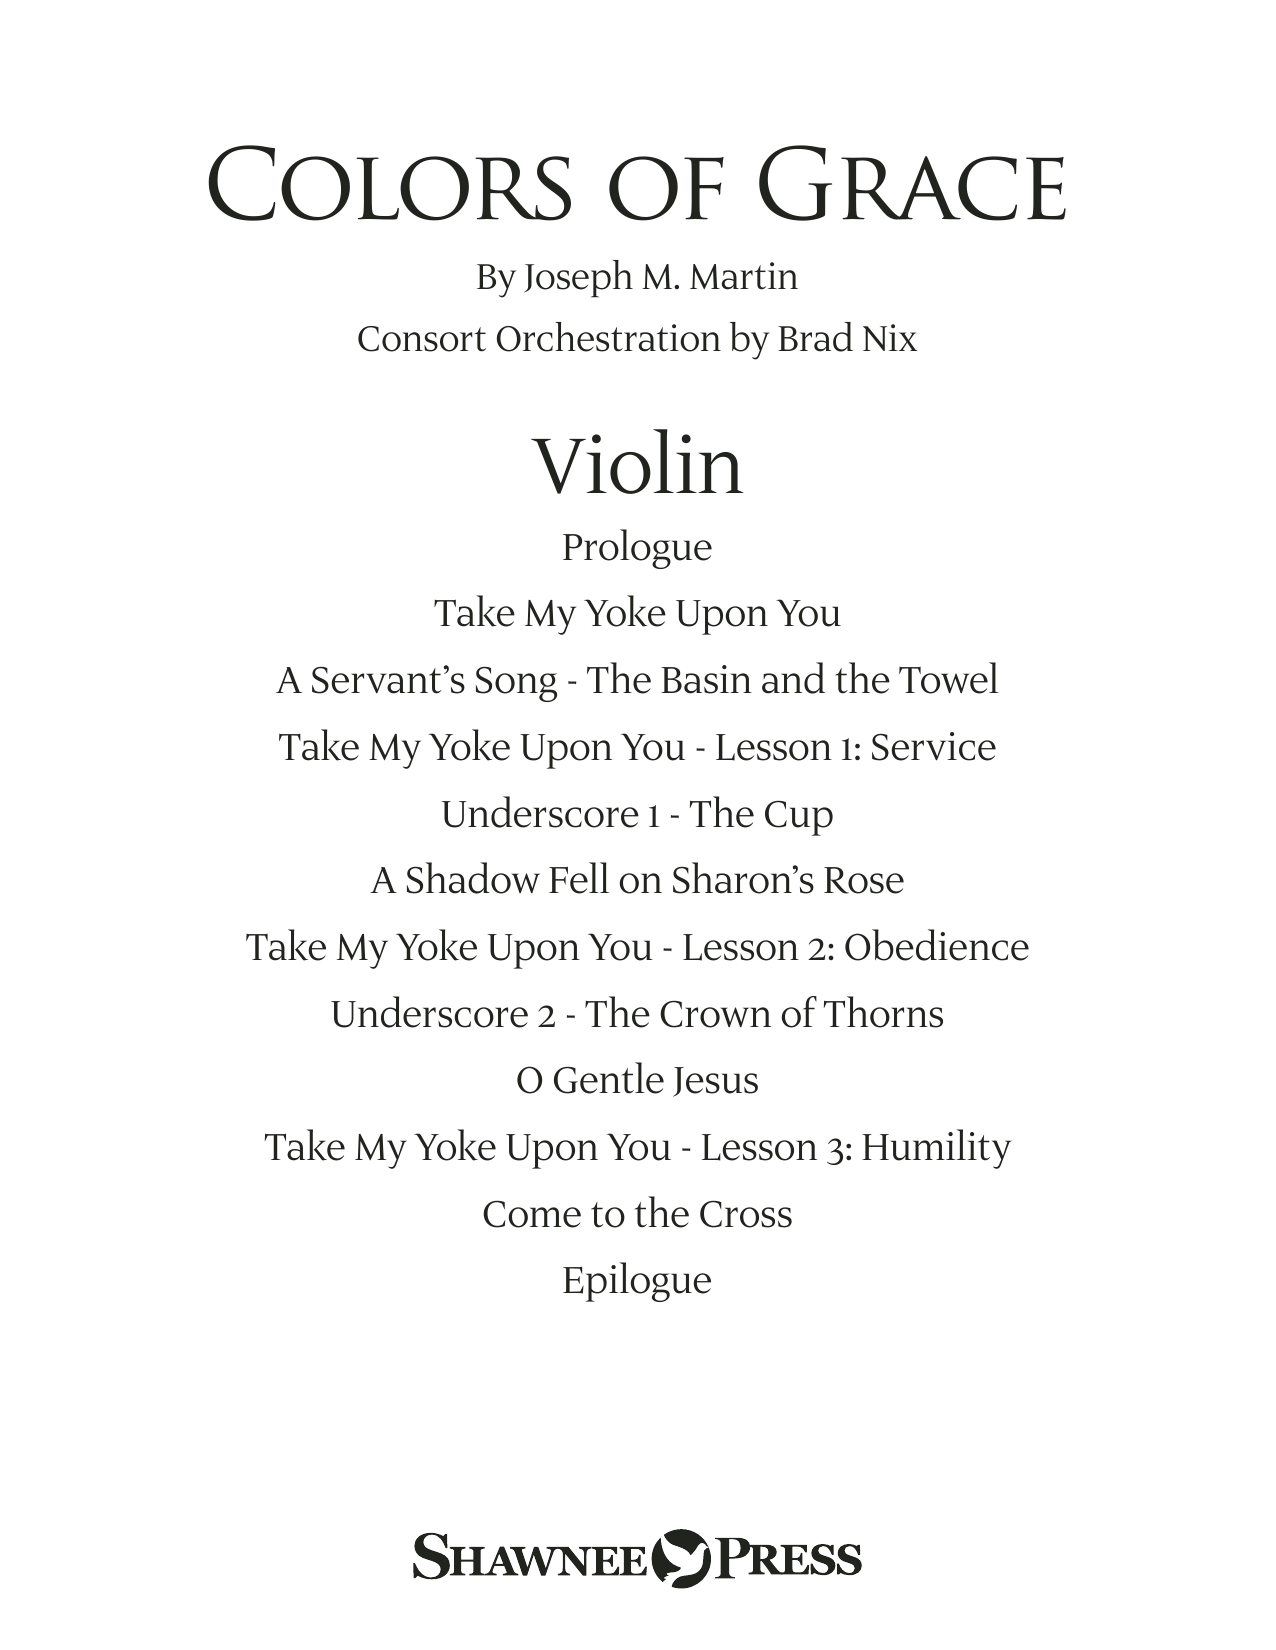 Colors of Grace - Lessons for Lent (New Edition) (Consort) - Violin Sheet Music